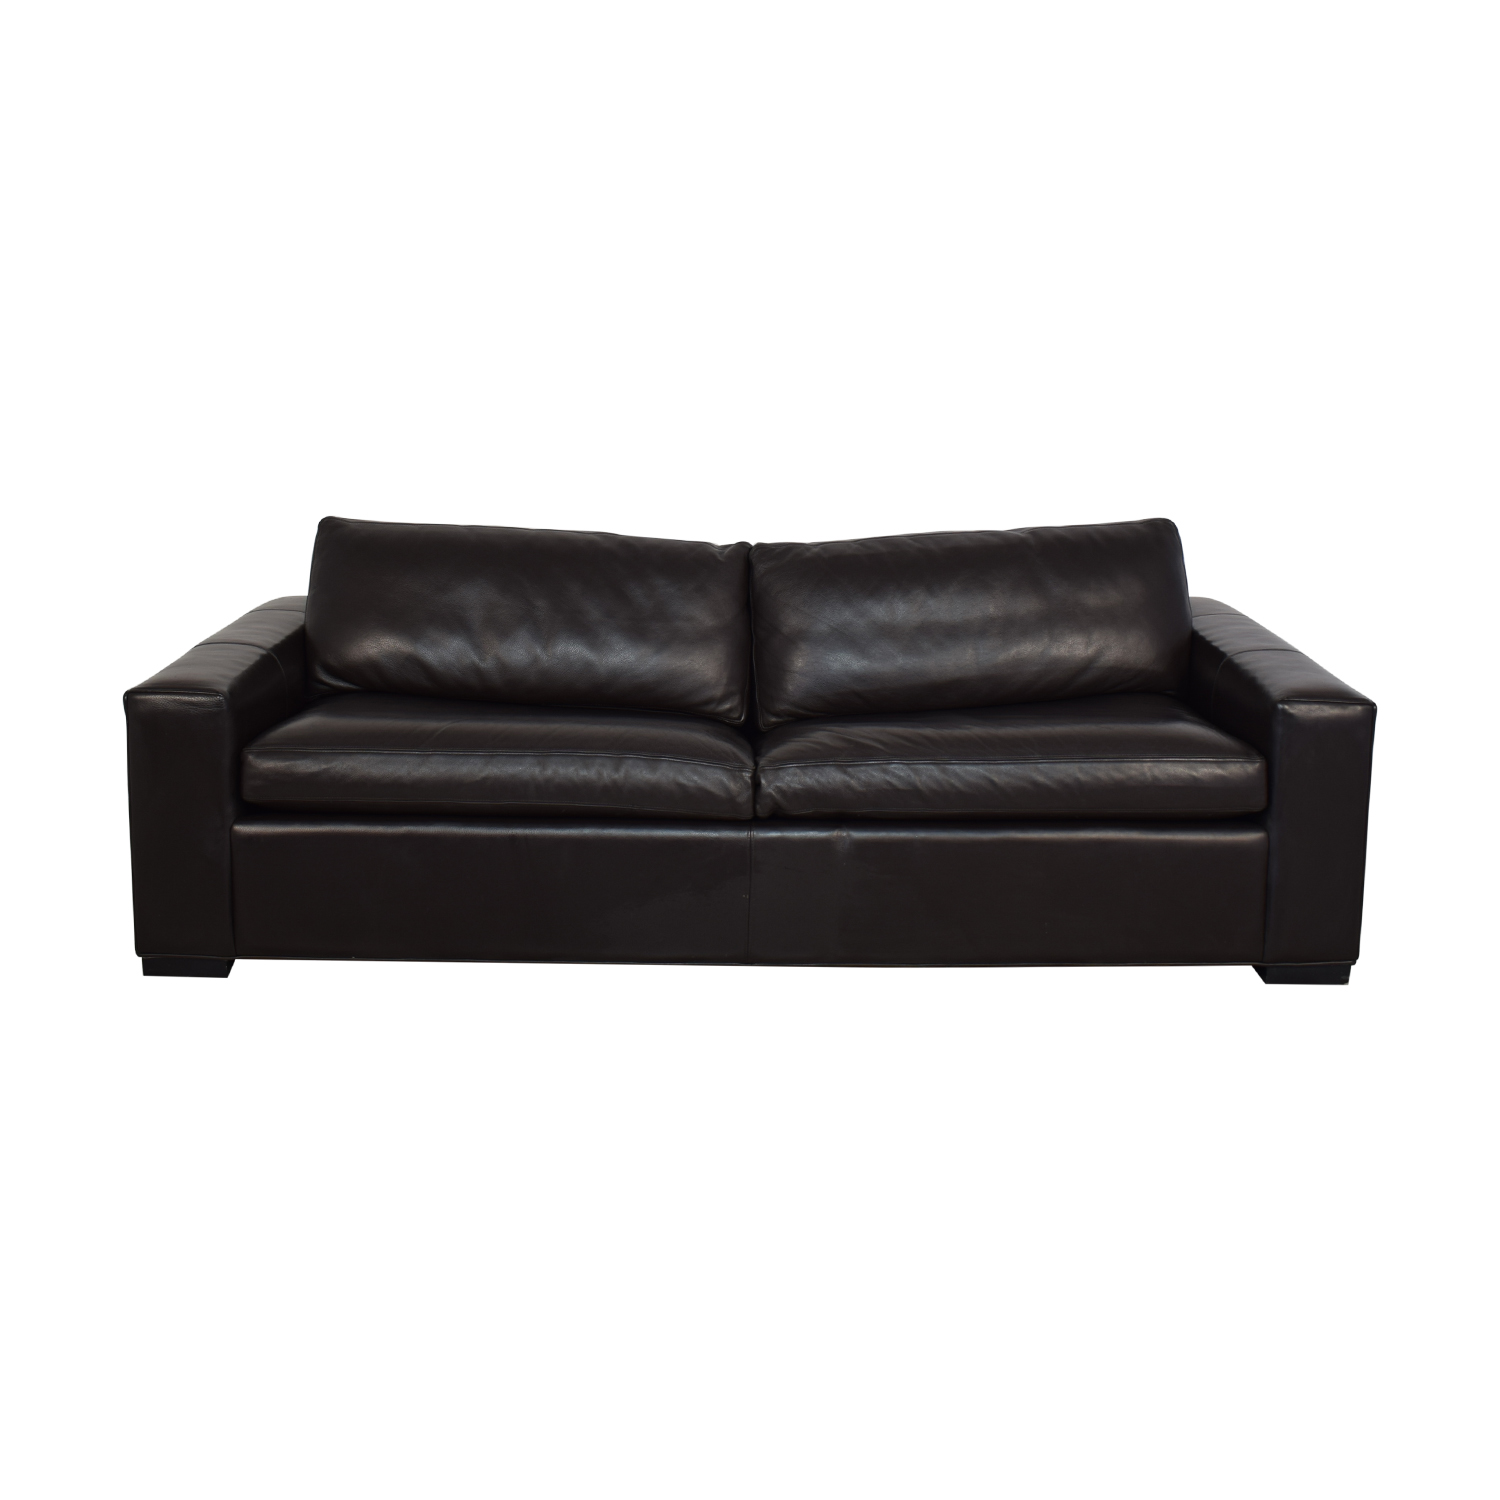 66% OFF - Room & Board Room & Board Leather Sleeper Sofa / Sofas